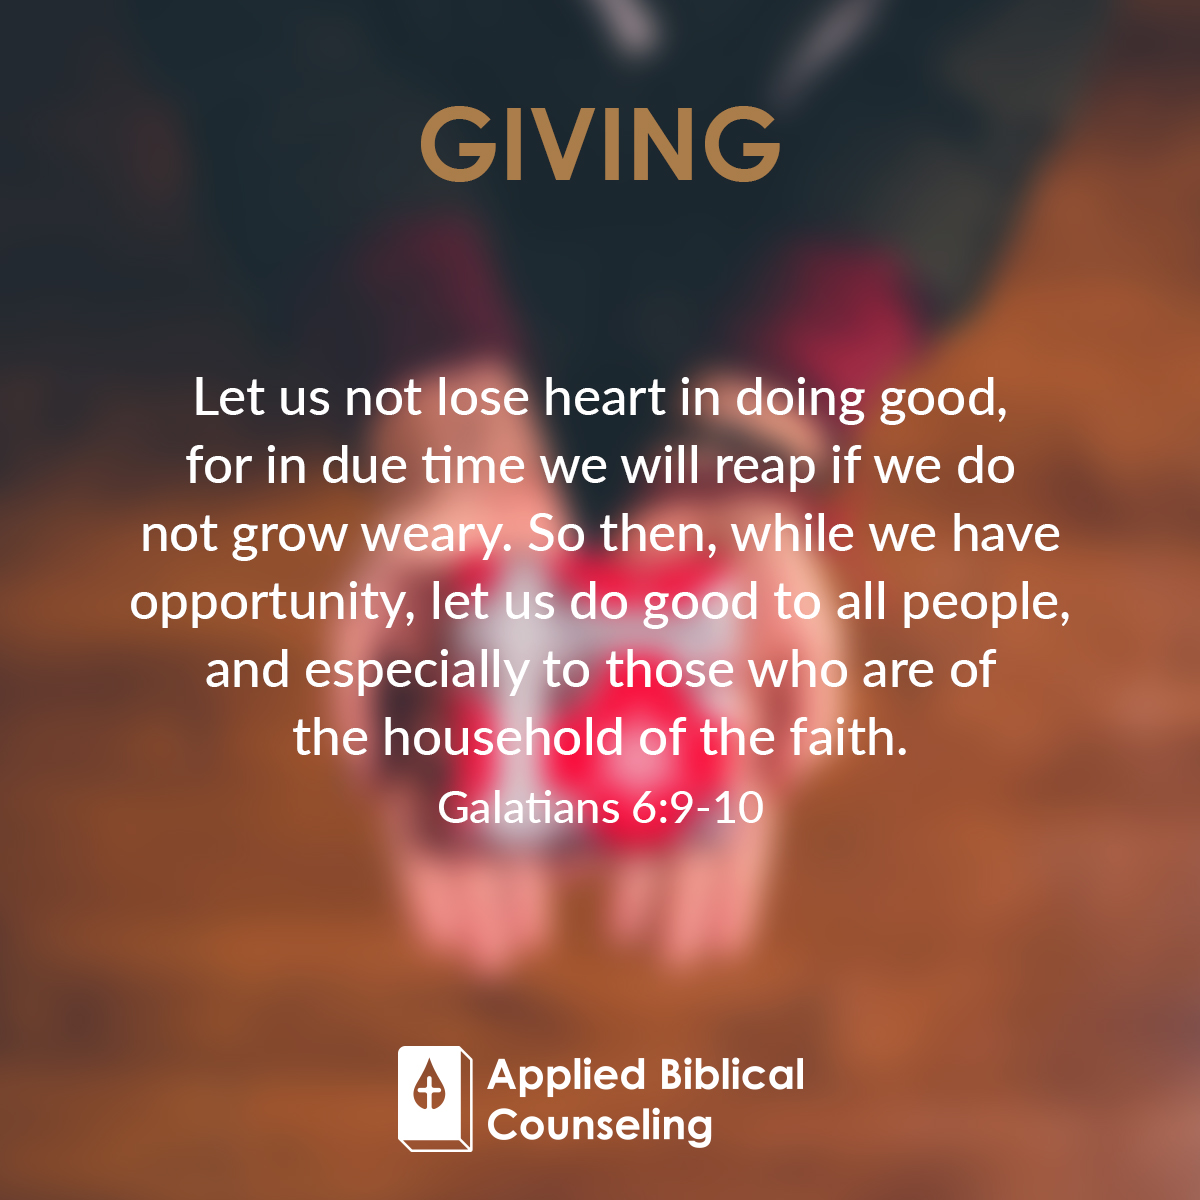 Giving Applied Biblical Counseling 1